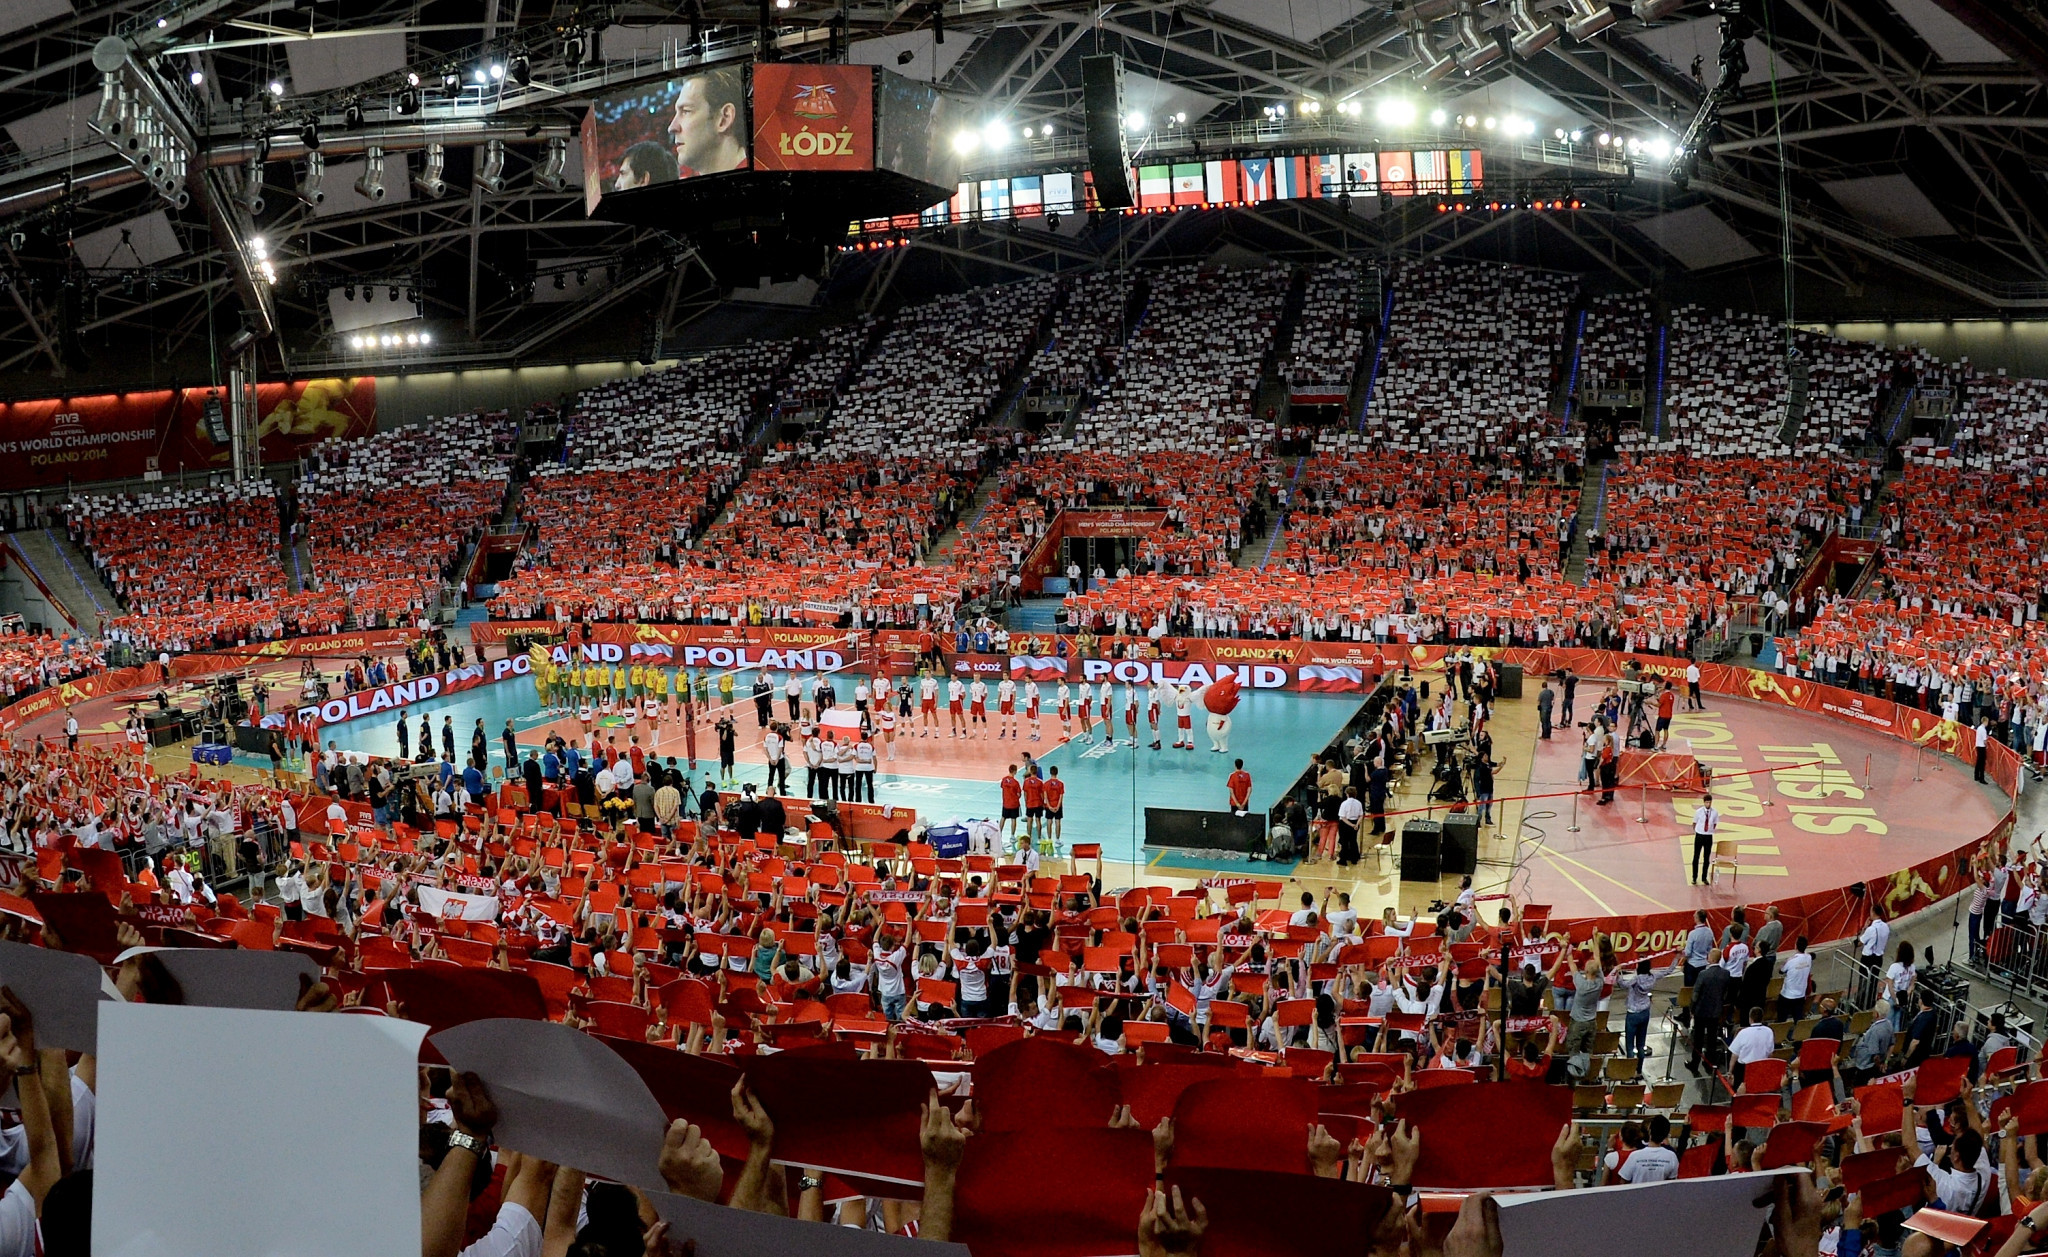 Lodz hosting a match at the World Volleyball Championships in 2014 ©Getty Images